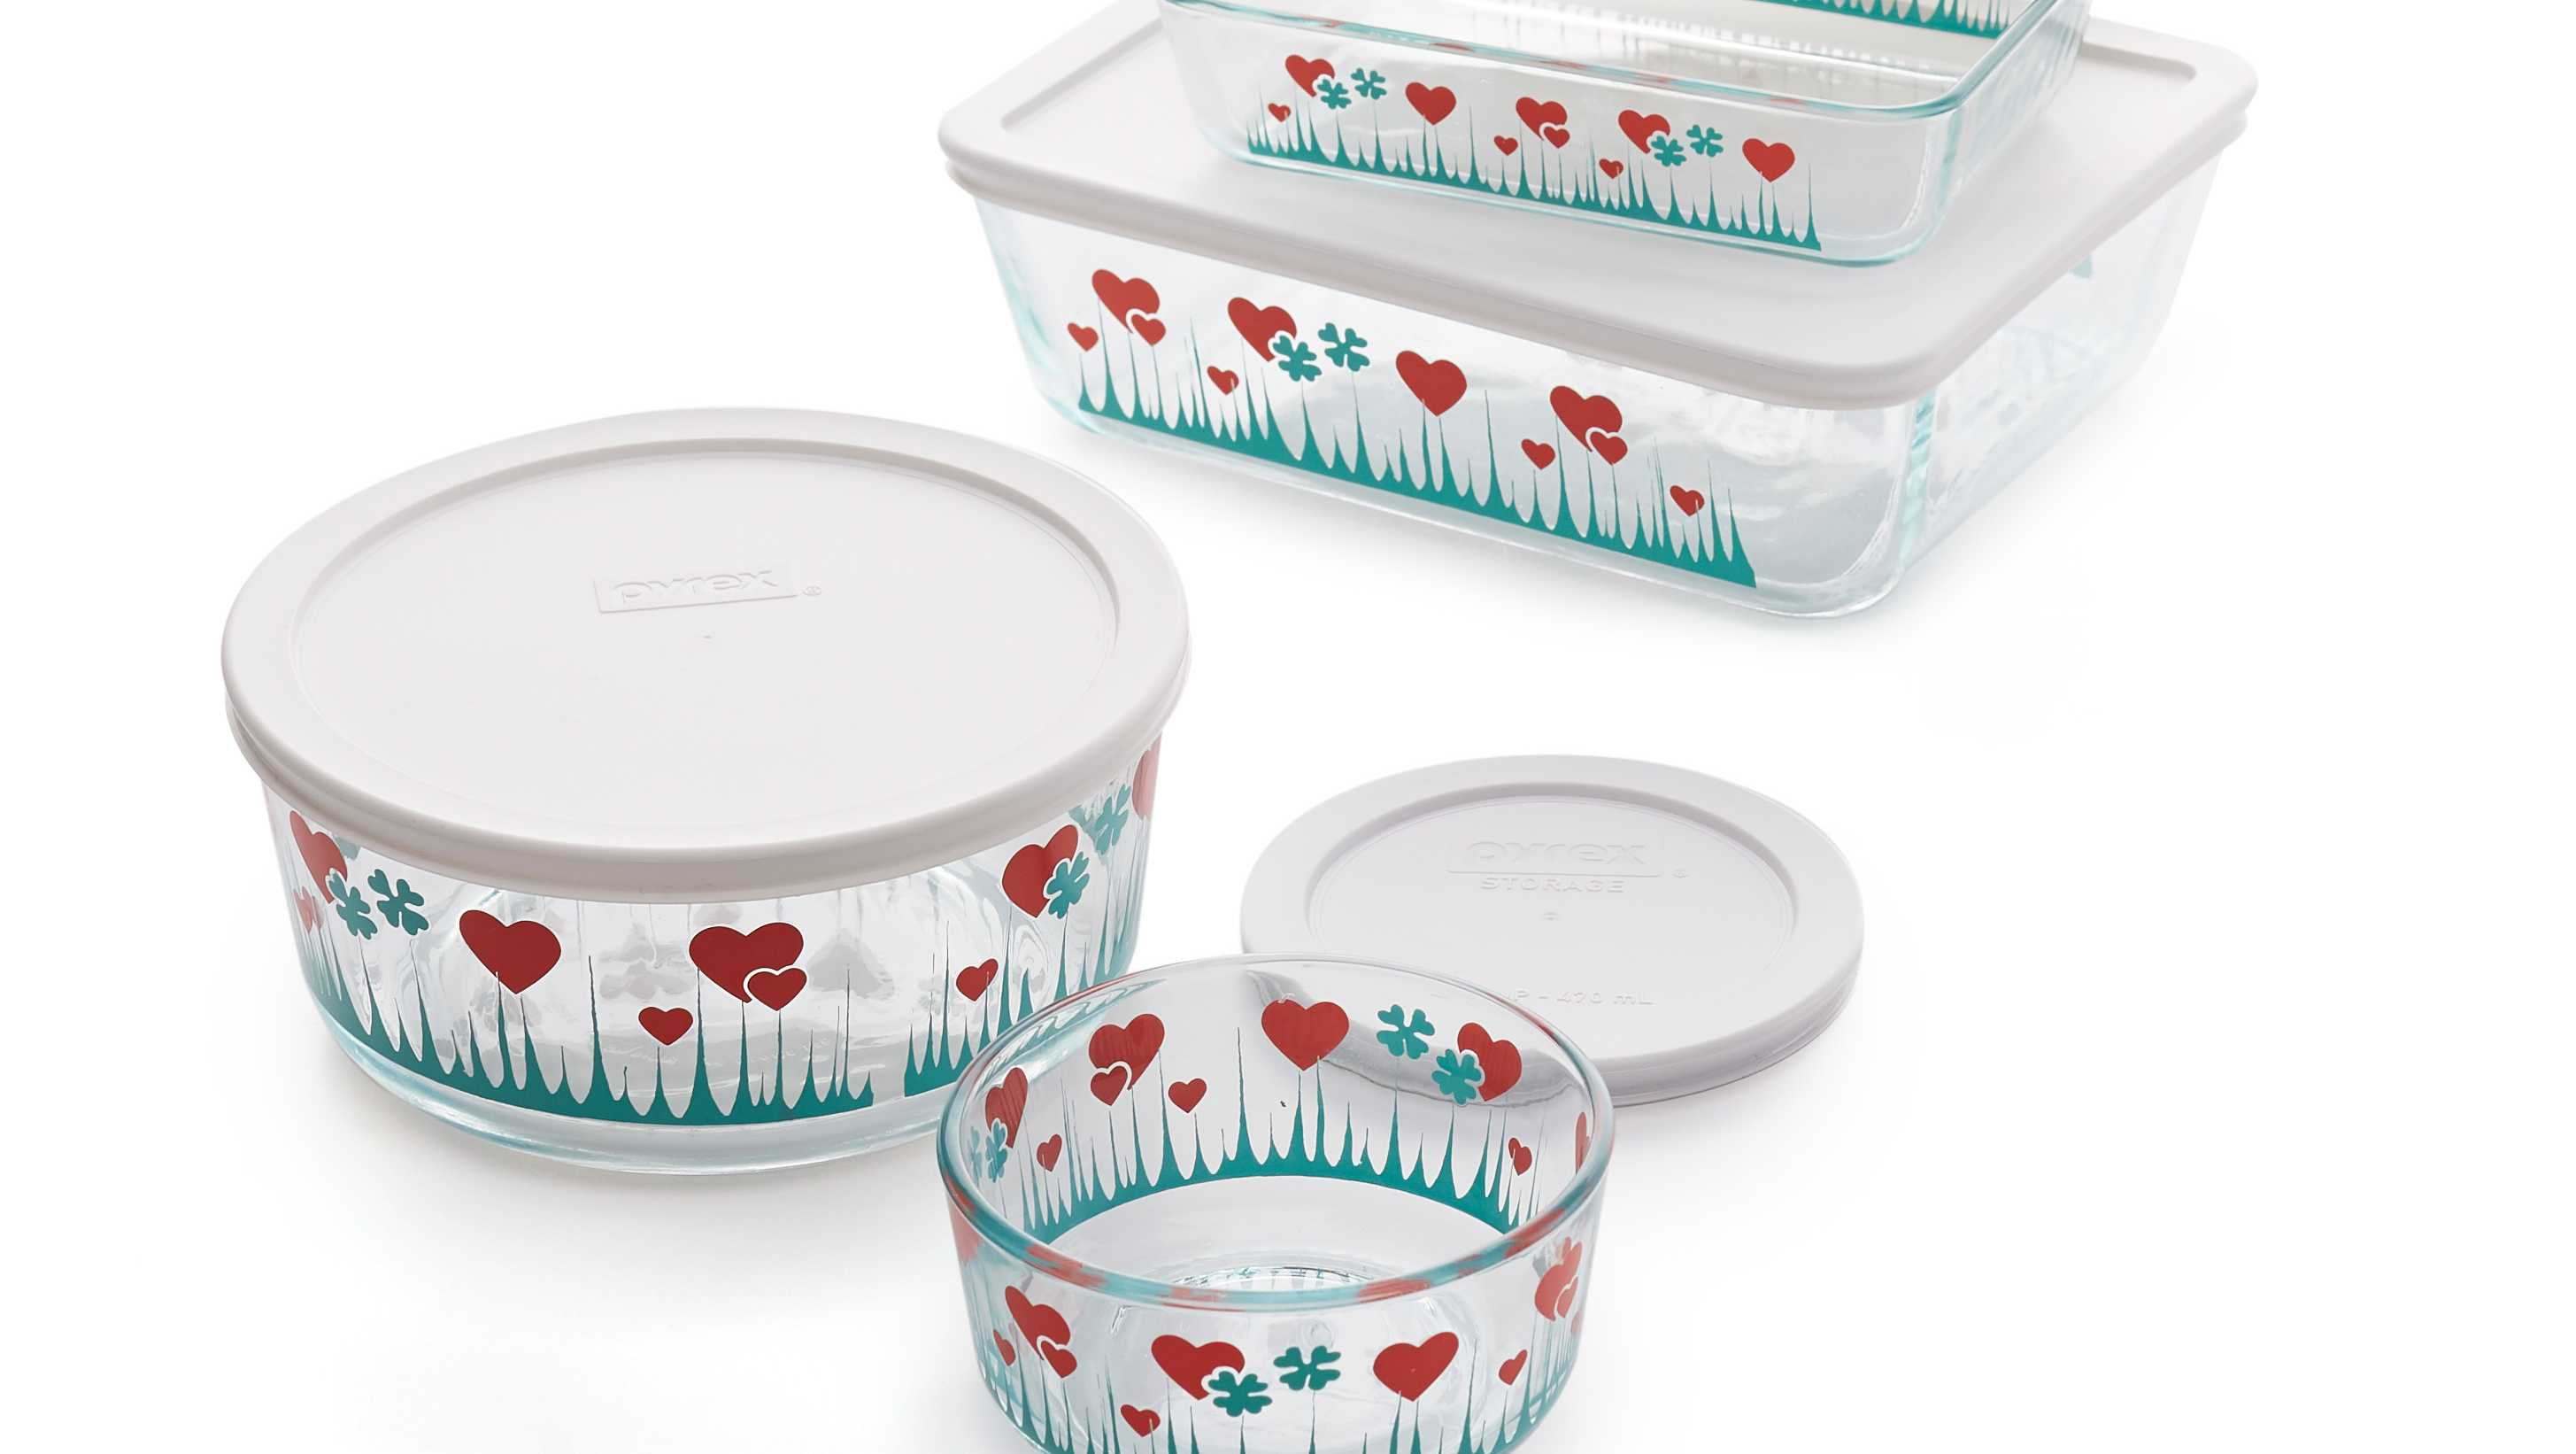 pyrex forever lucky in love storage dishes